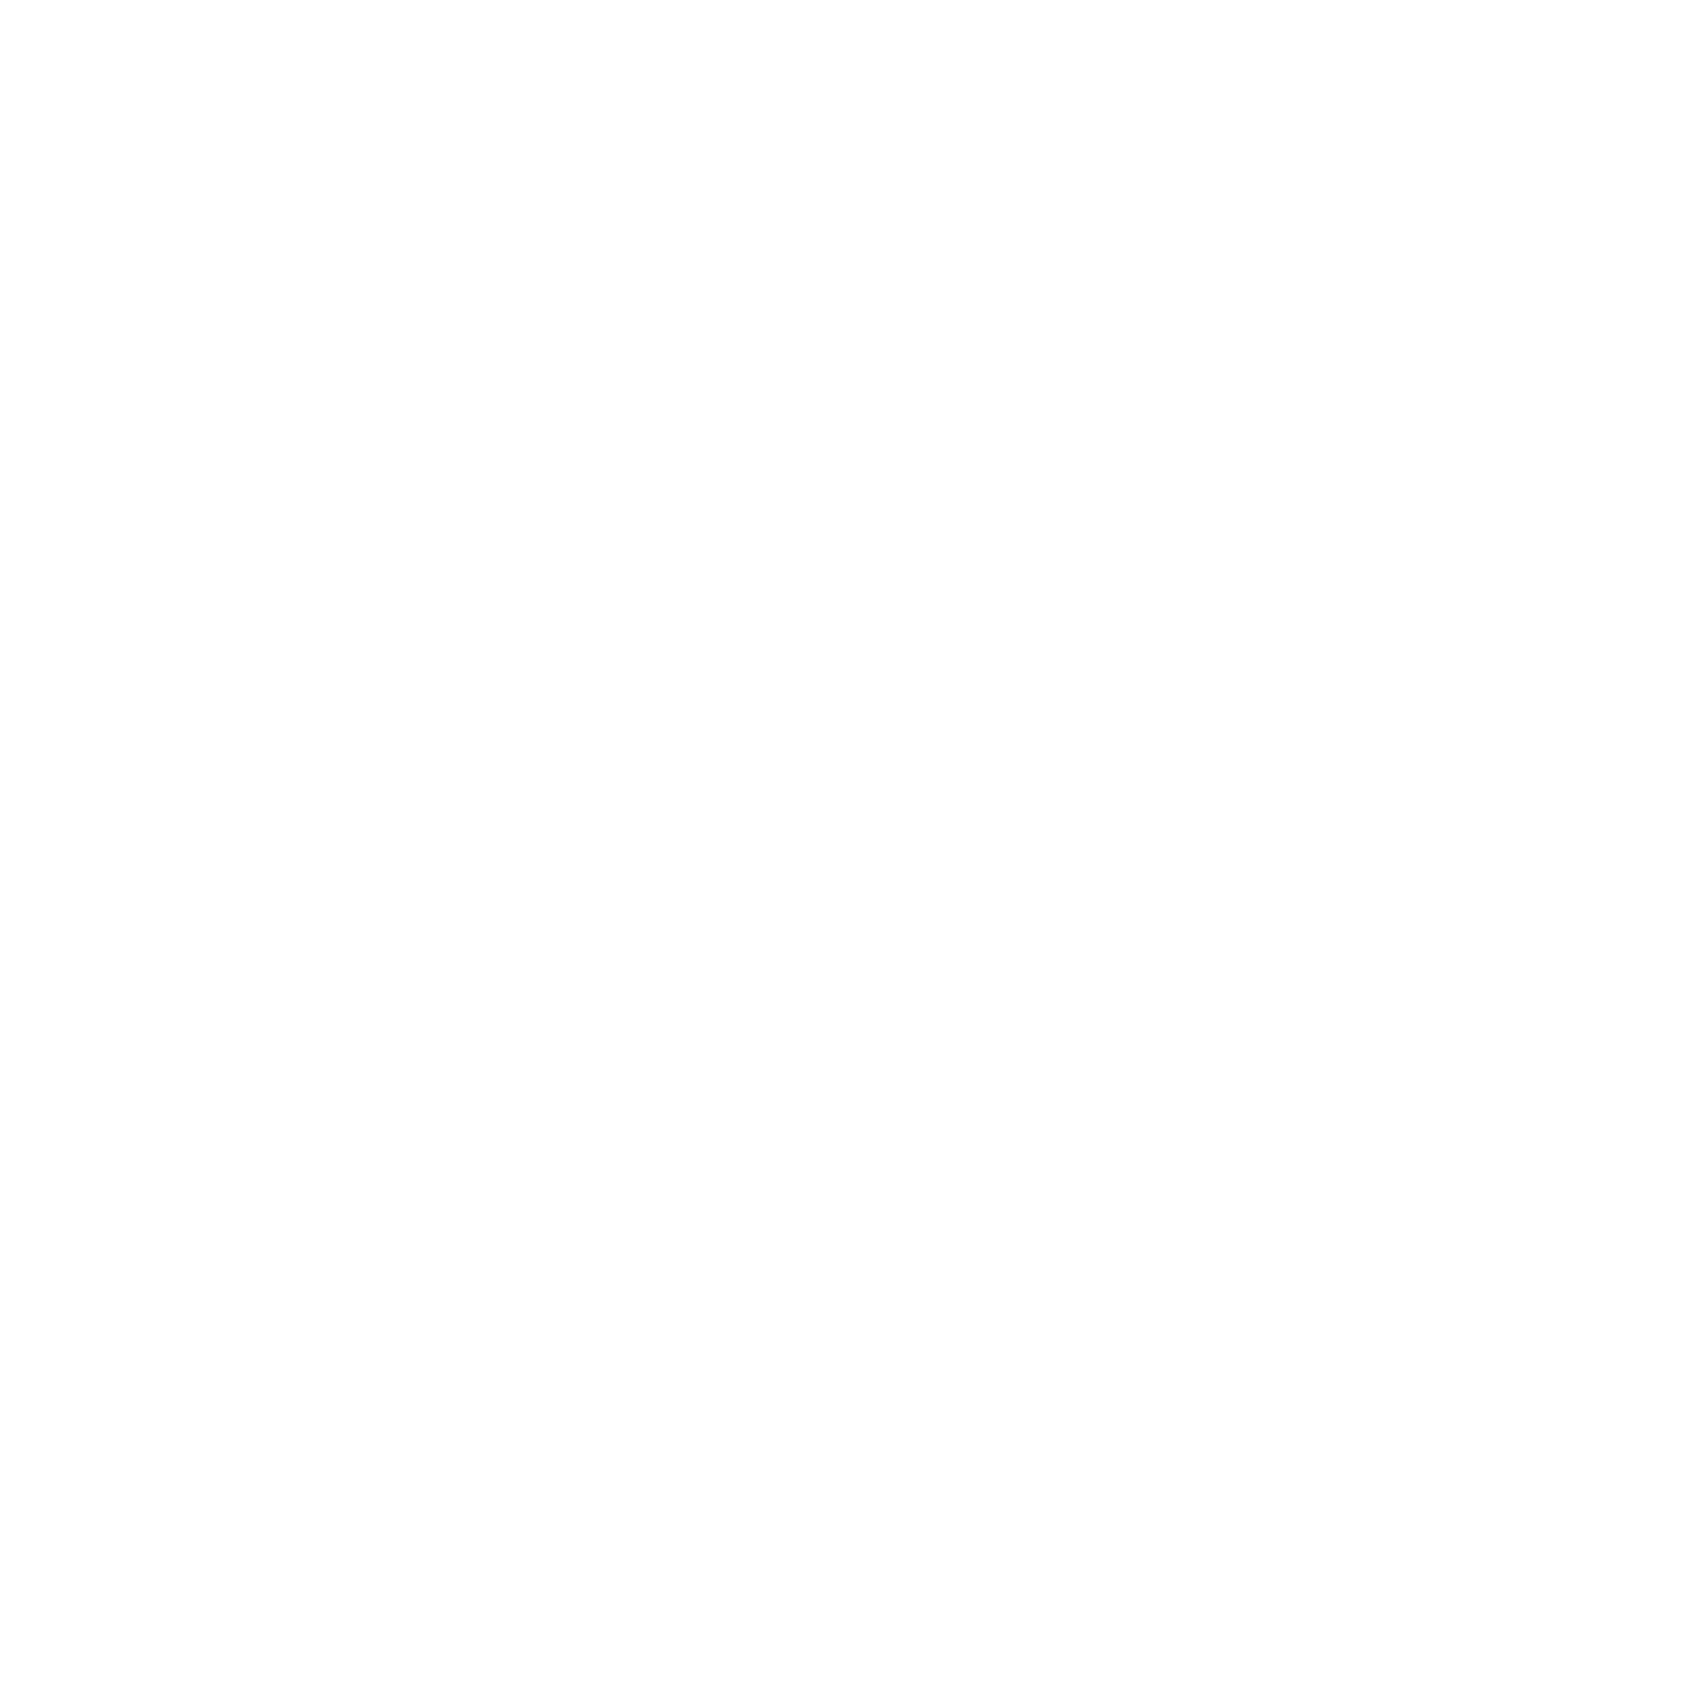 Bora Bora Quad Adventures